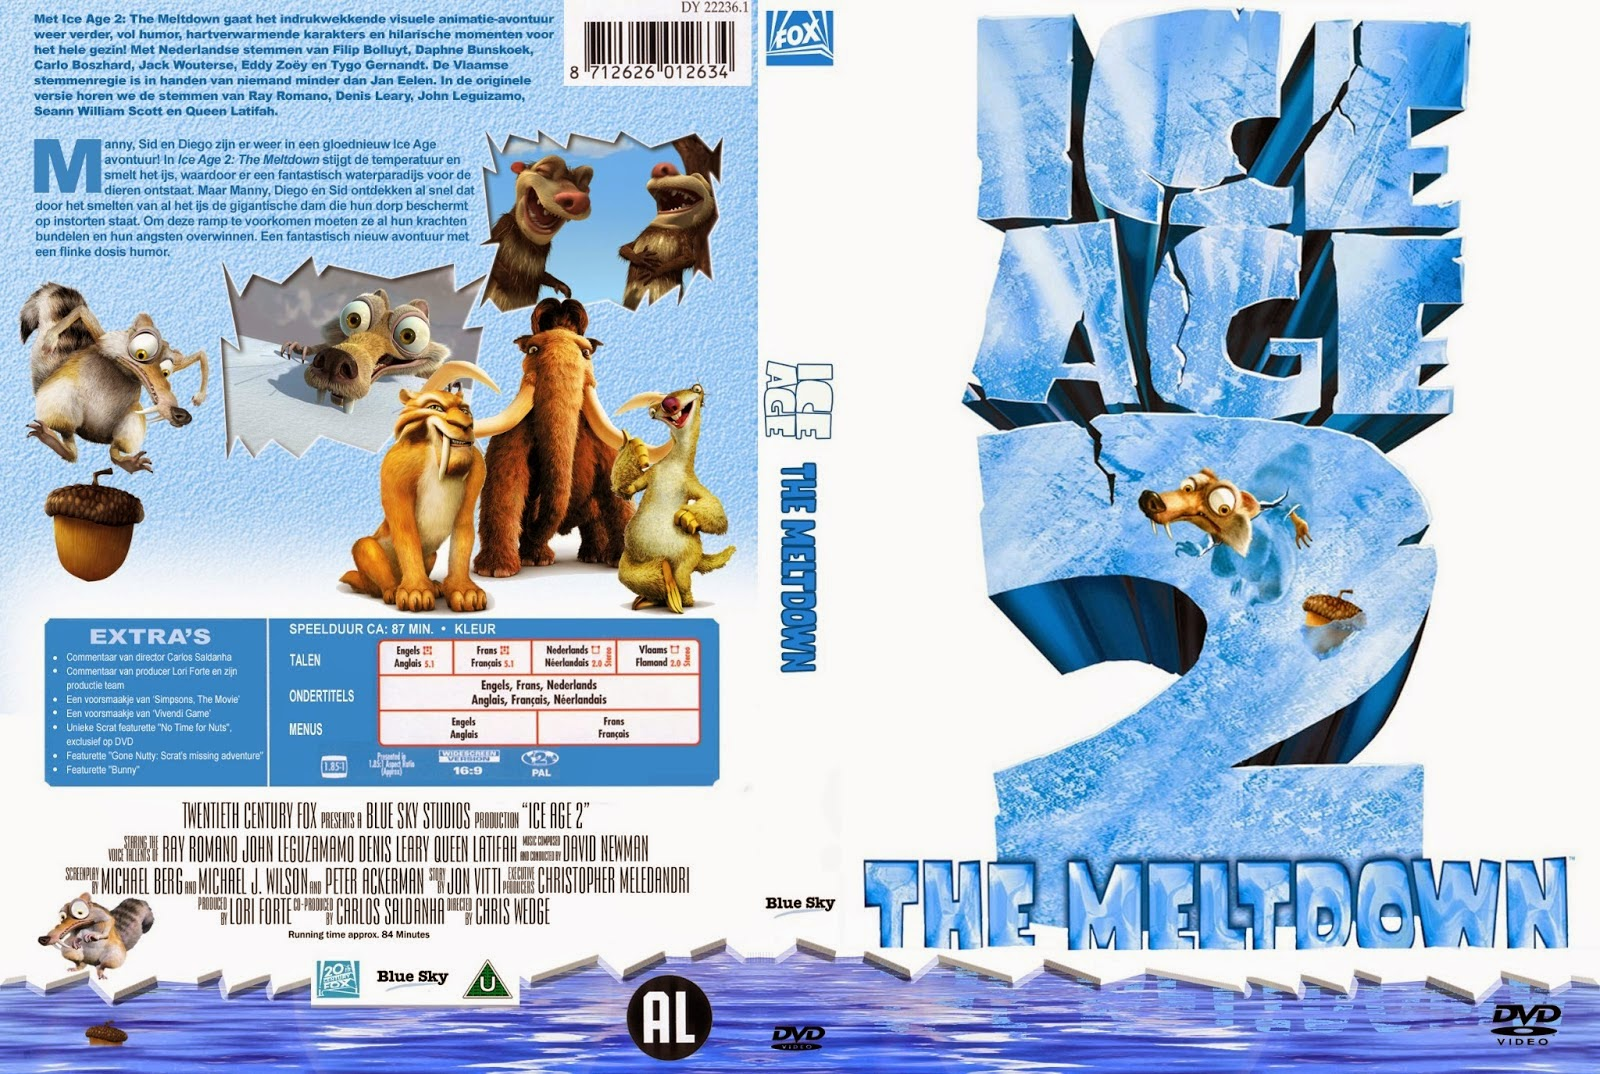 Ice Age 2 The Meltdown PC Game Download Games Crack Free Full Version. cros